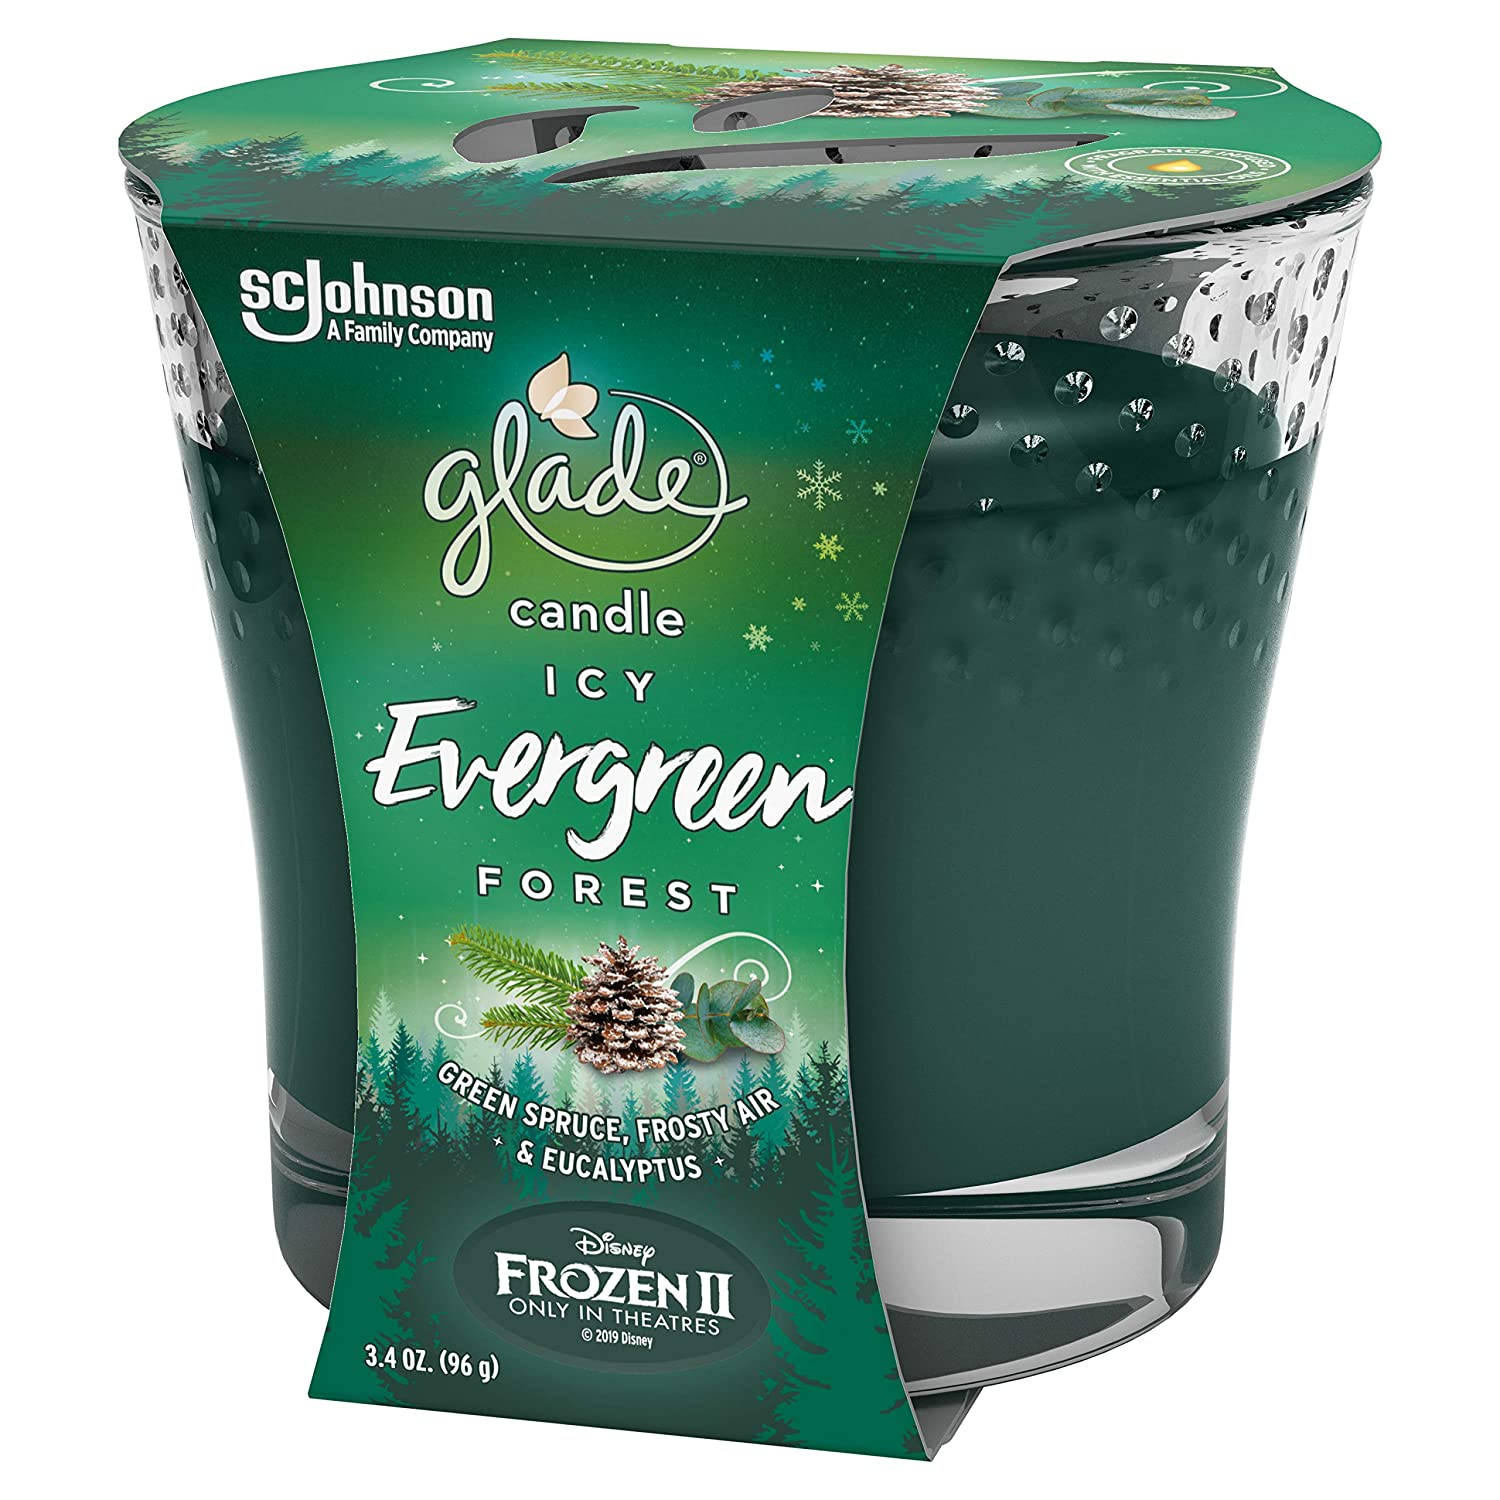 Fragrance Candle Infused with Essential Oils 3.4 Oz Glade Jar Candle Icy Ever Green Forest